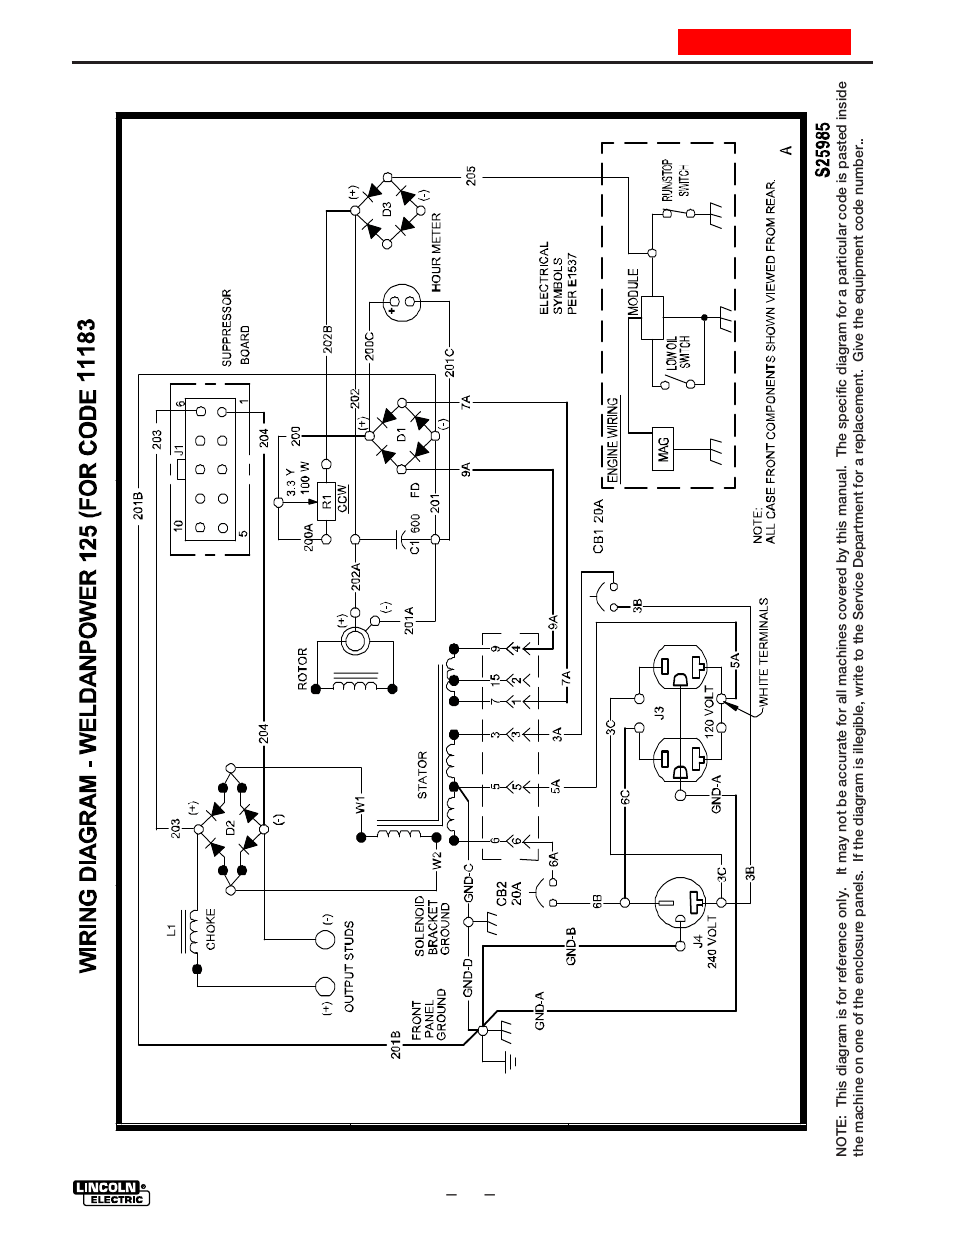 medium resolution of wiring diagram lincoln electric weldanpower 125 im530 c user manual page 33 40